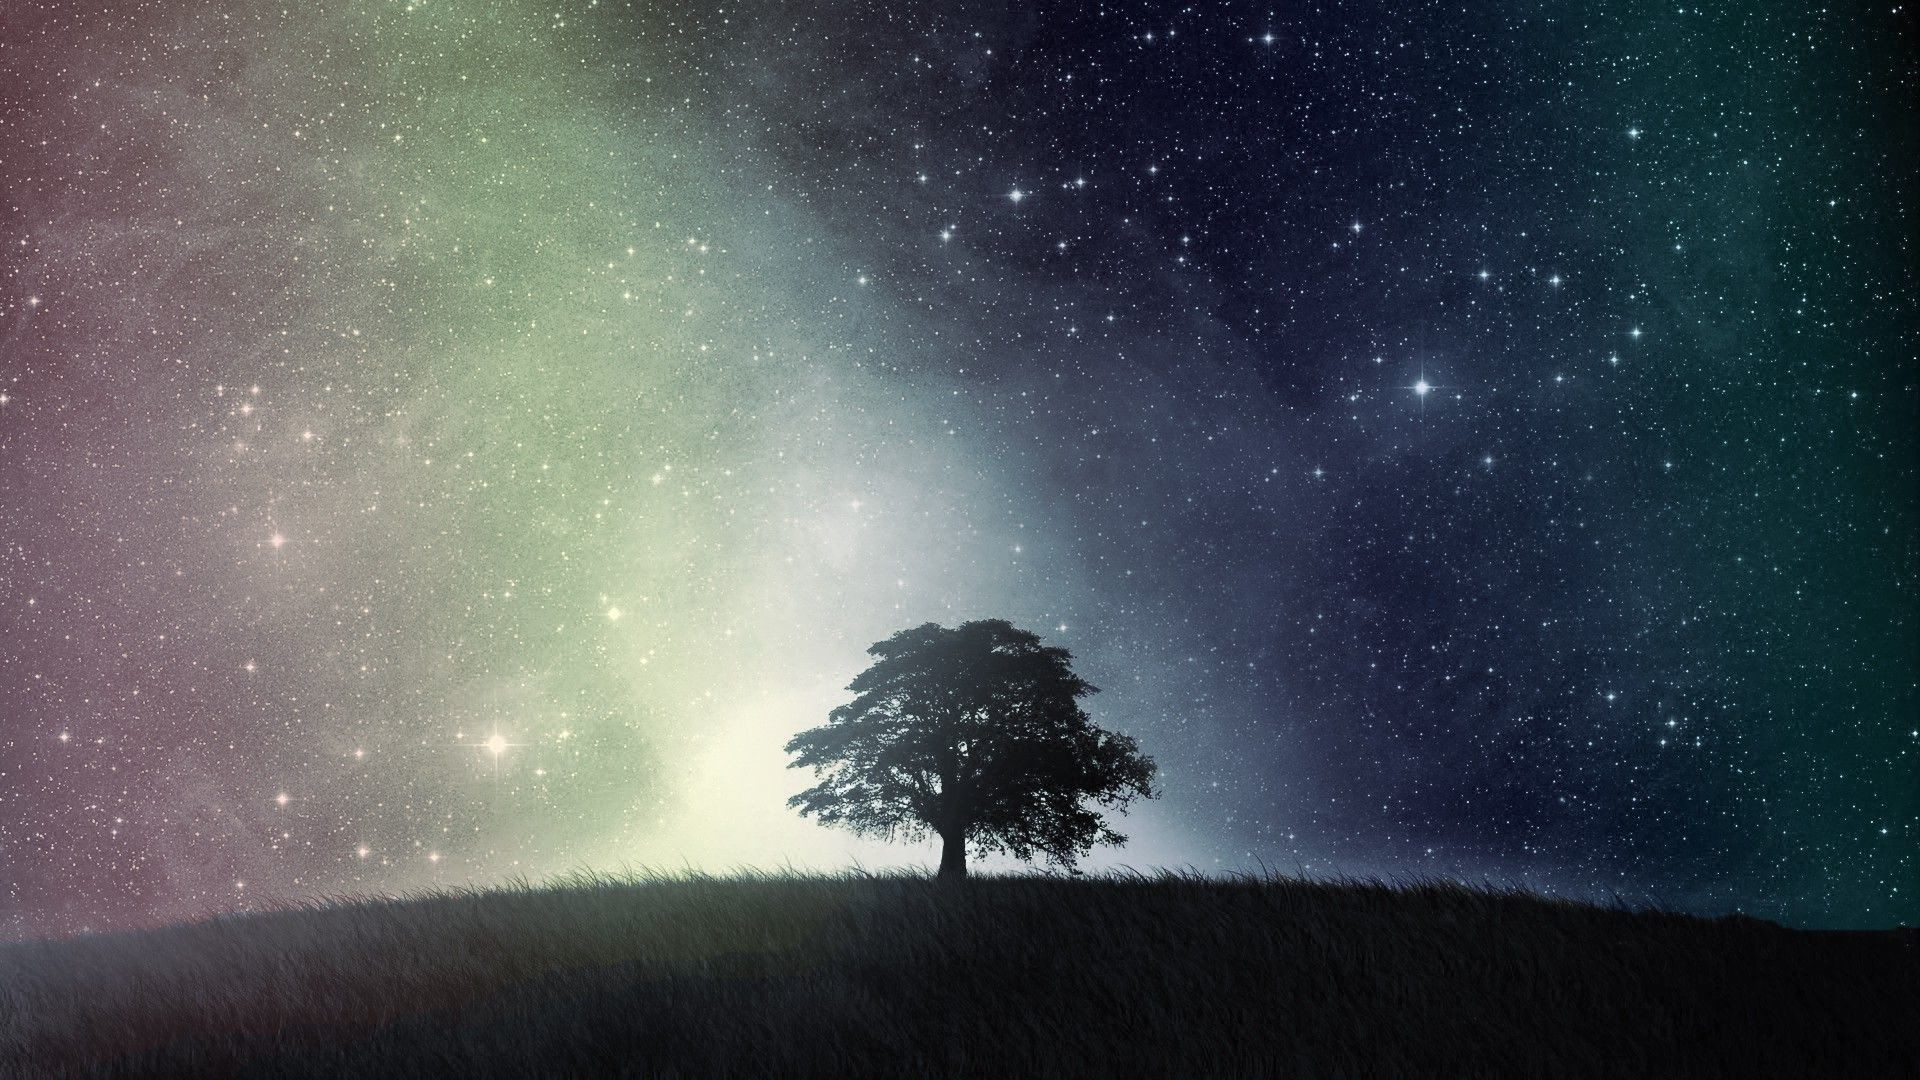 Top Sky Night Tree Starry Images for Pinterest